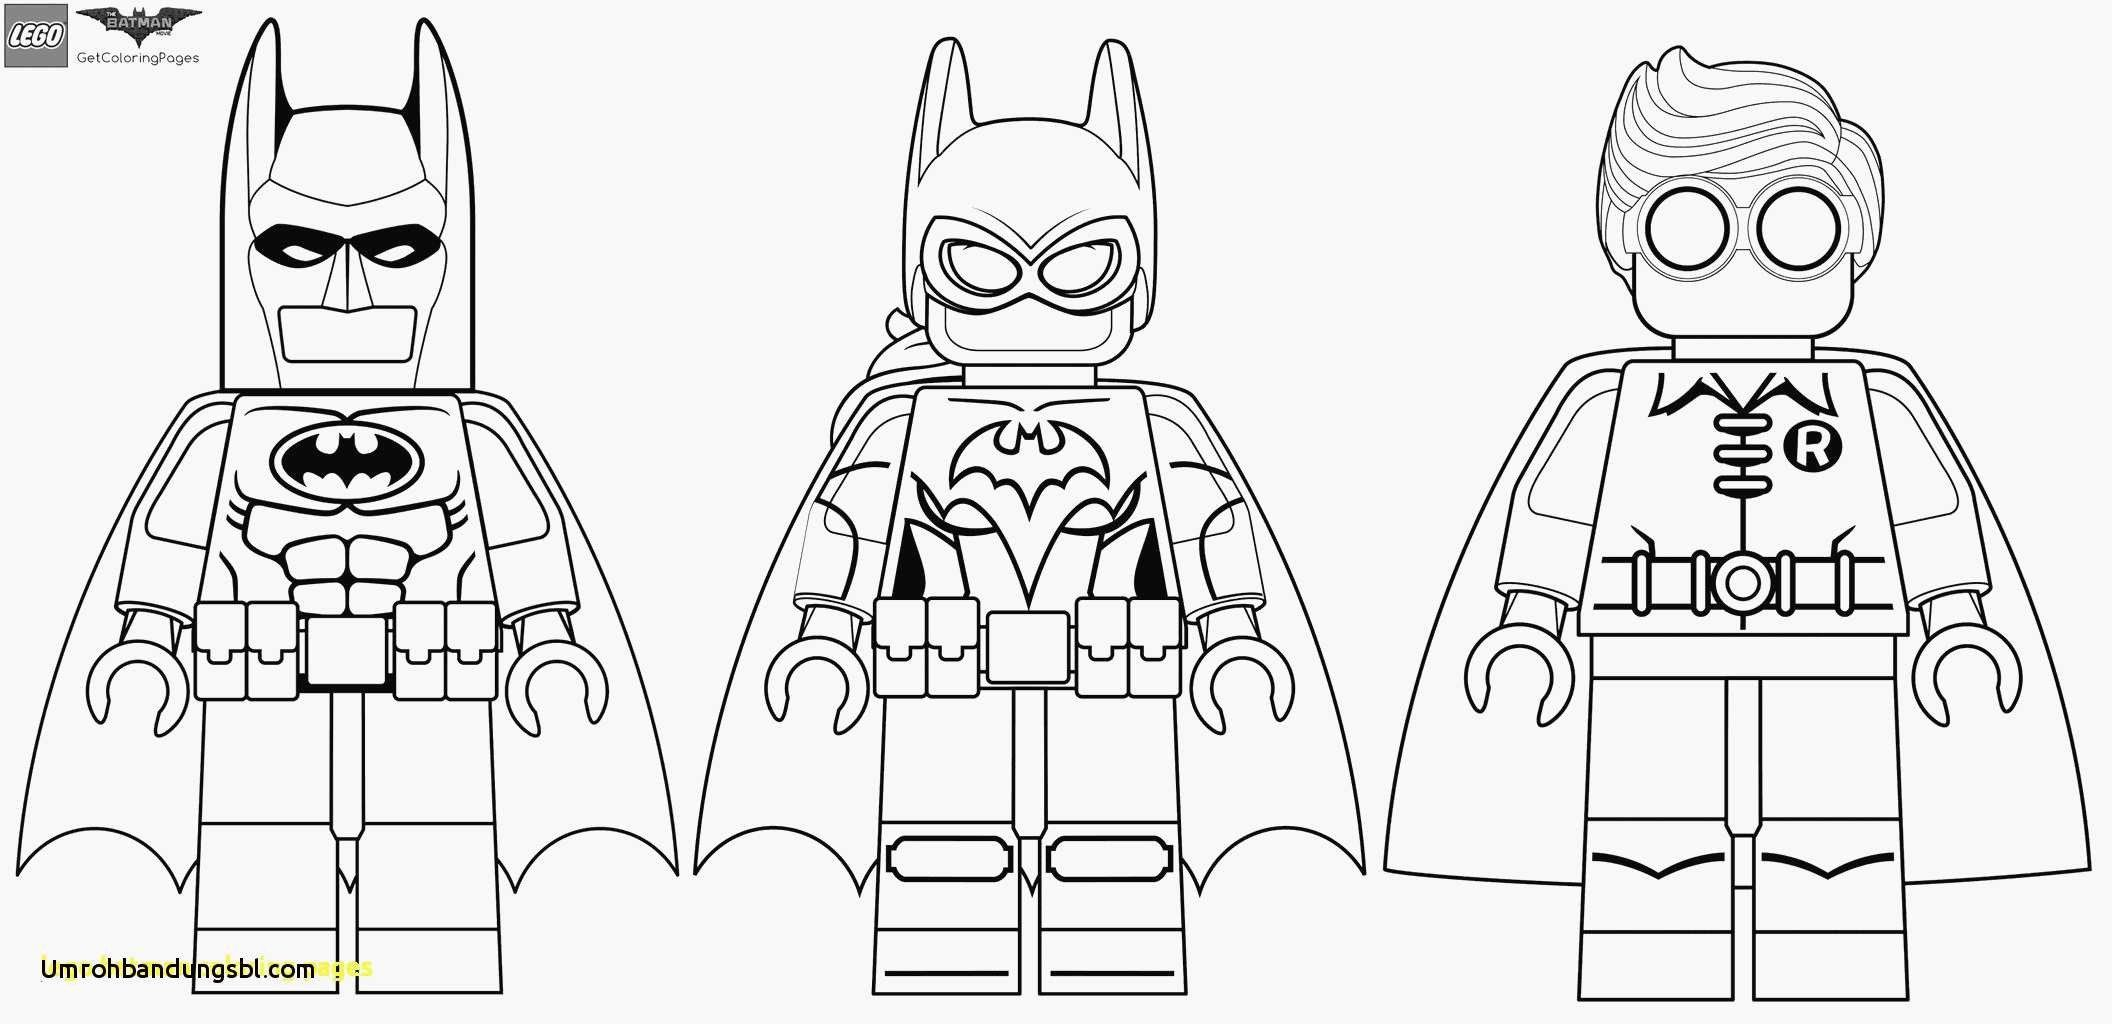 Lego Superhero Coloring Pages Unique Truthahn Maske Vorlage Elegant Lego Batman 2 Printable Col Superhero Coloring Pages Hulk Coloring Pages Superhero Coloring